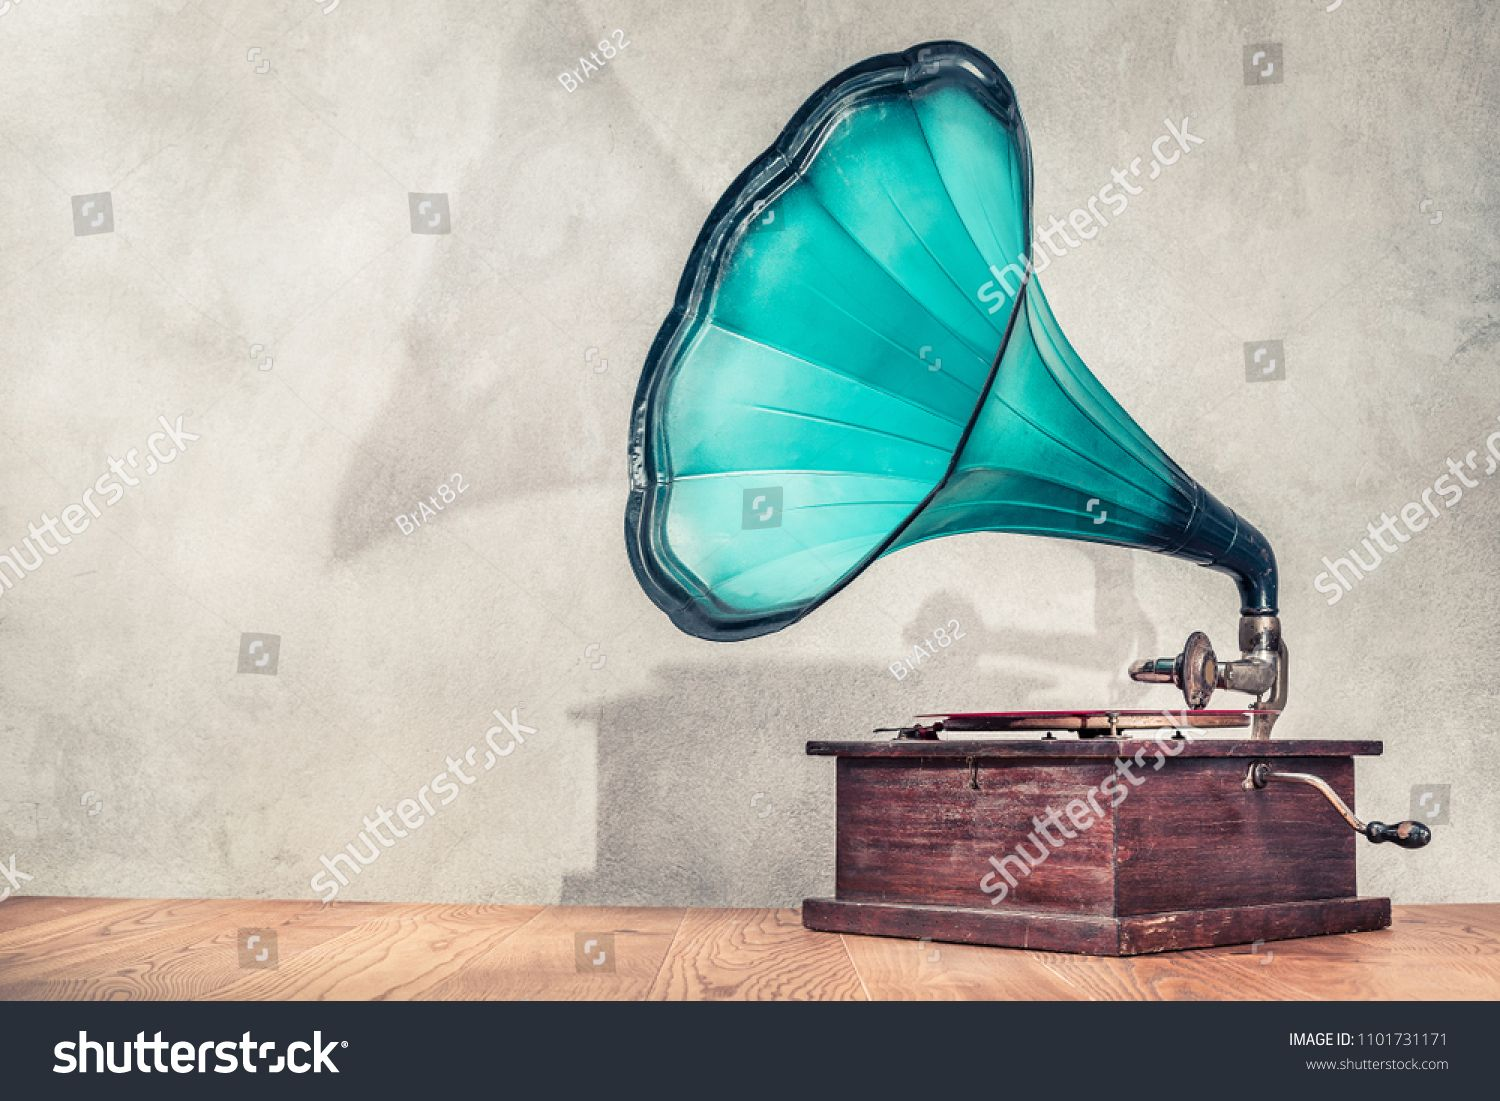 Vintage antique aged aquamarine gramophone phonograph turntable on wooden table front concrete wall background with its shadow. Retro old style filtered photo #Sponsored , #Affiliate, #turntable#phonograph#table#wooden